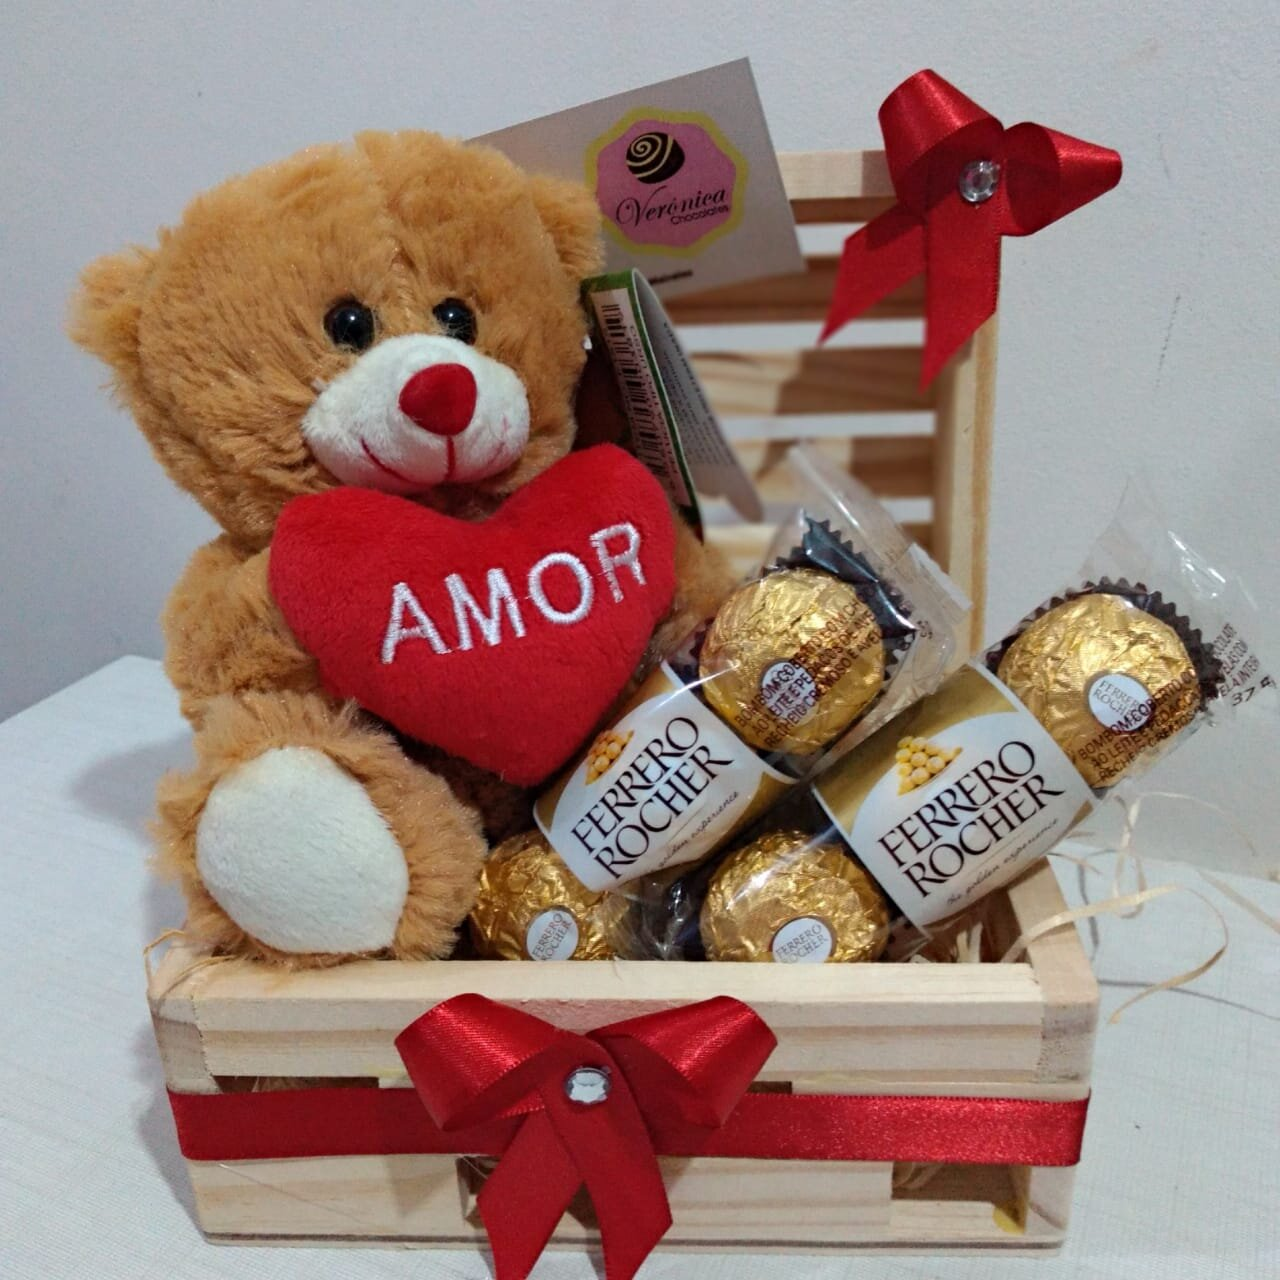 Mini Baú - Urso pequeno + 6 chocolates Ferrero Rocher por R$59,99